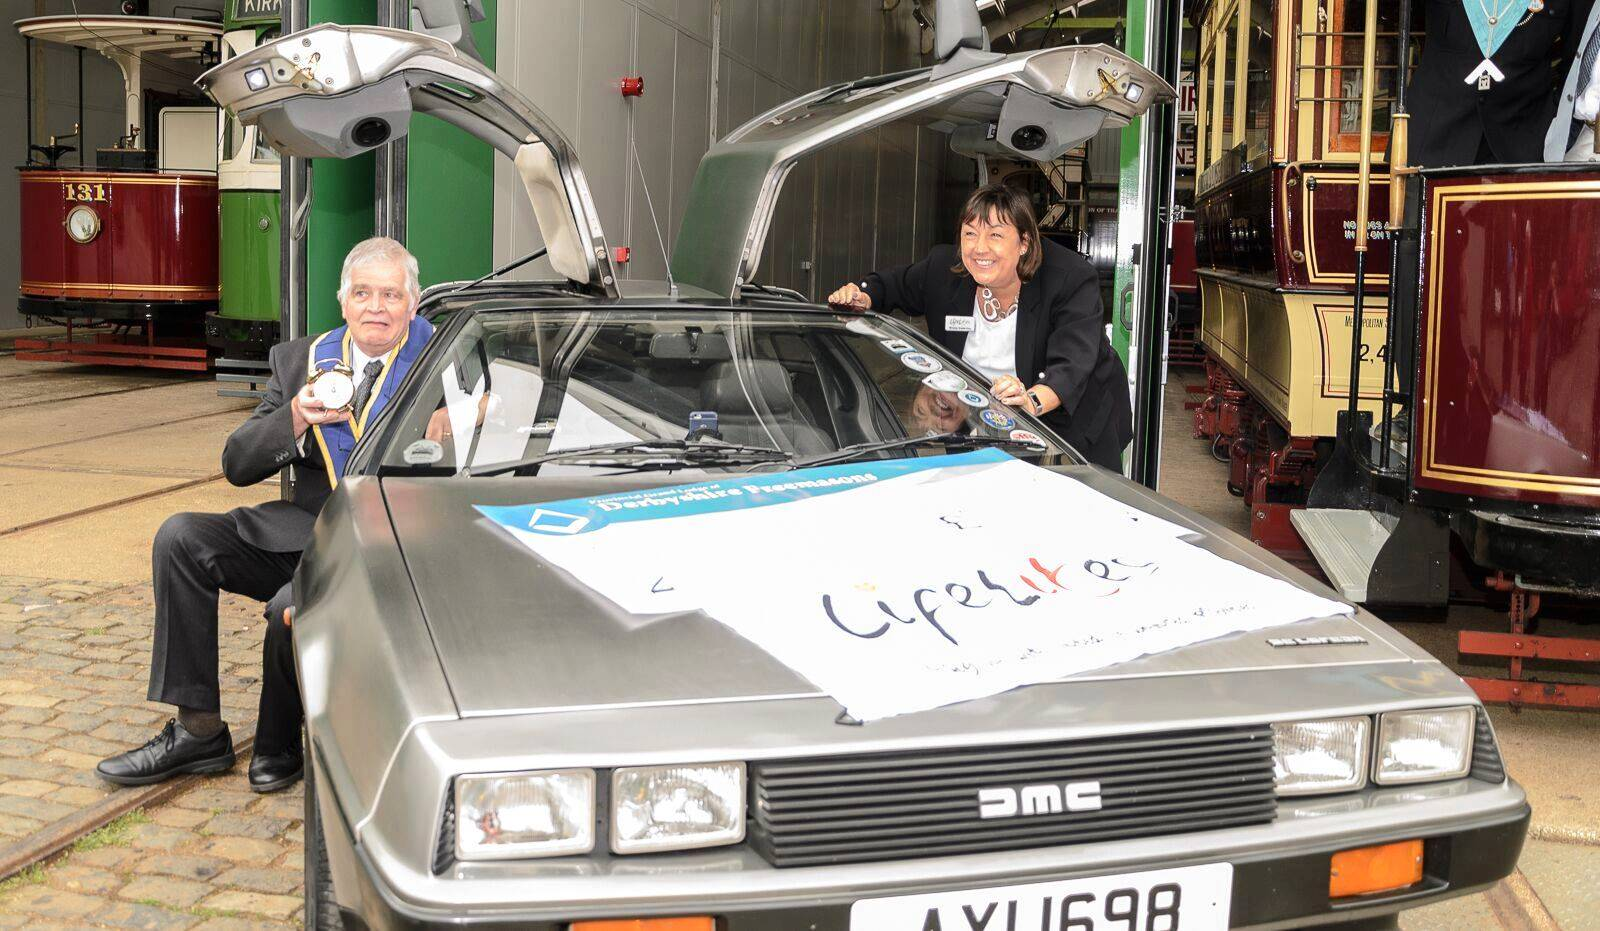 With Derbyshire Freemason in a DeLorean